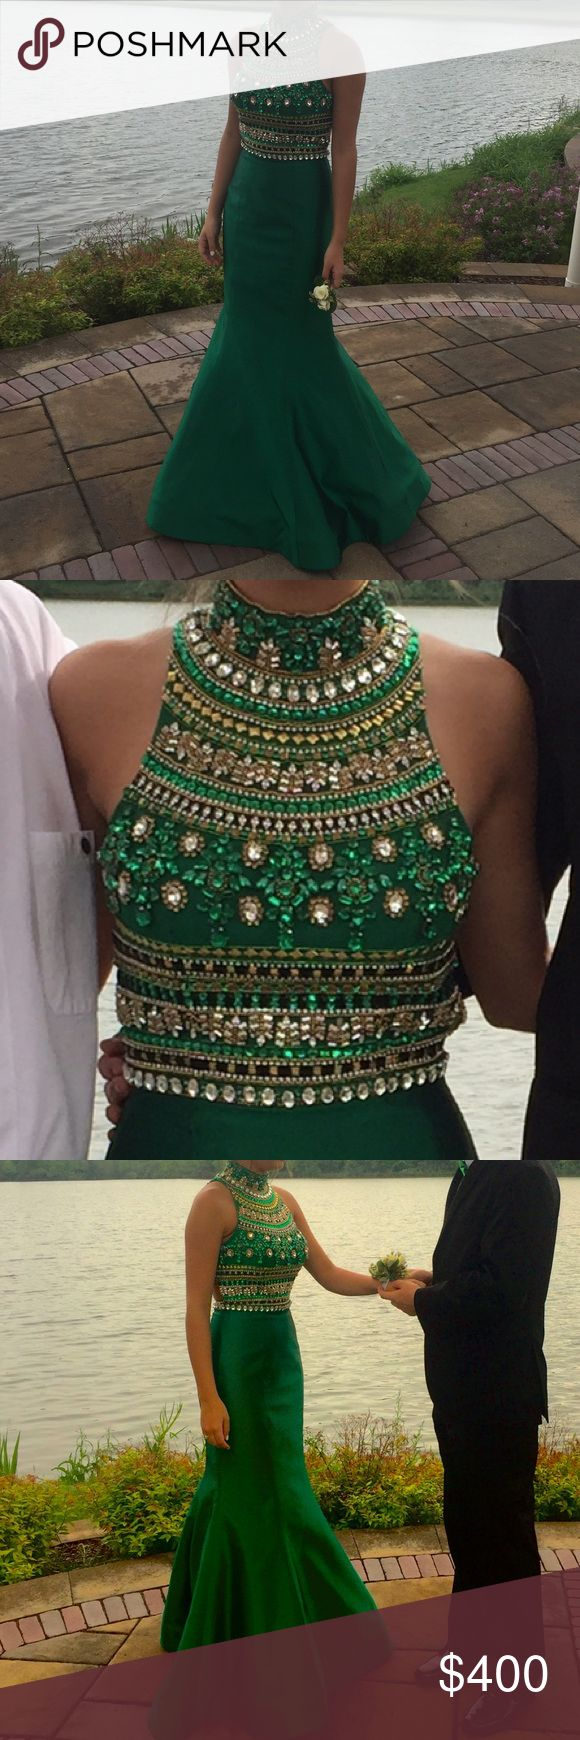 SHERRI HILL EMERALD GREEN PROM DRESS this is such a beautiful dress, worn once to prom! Sherri Hill Dresses Prom